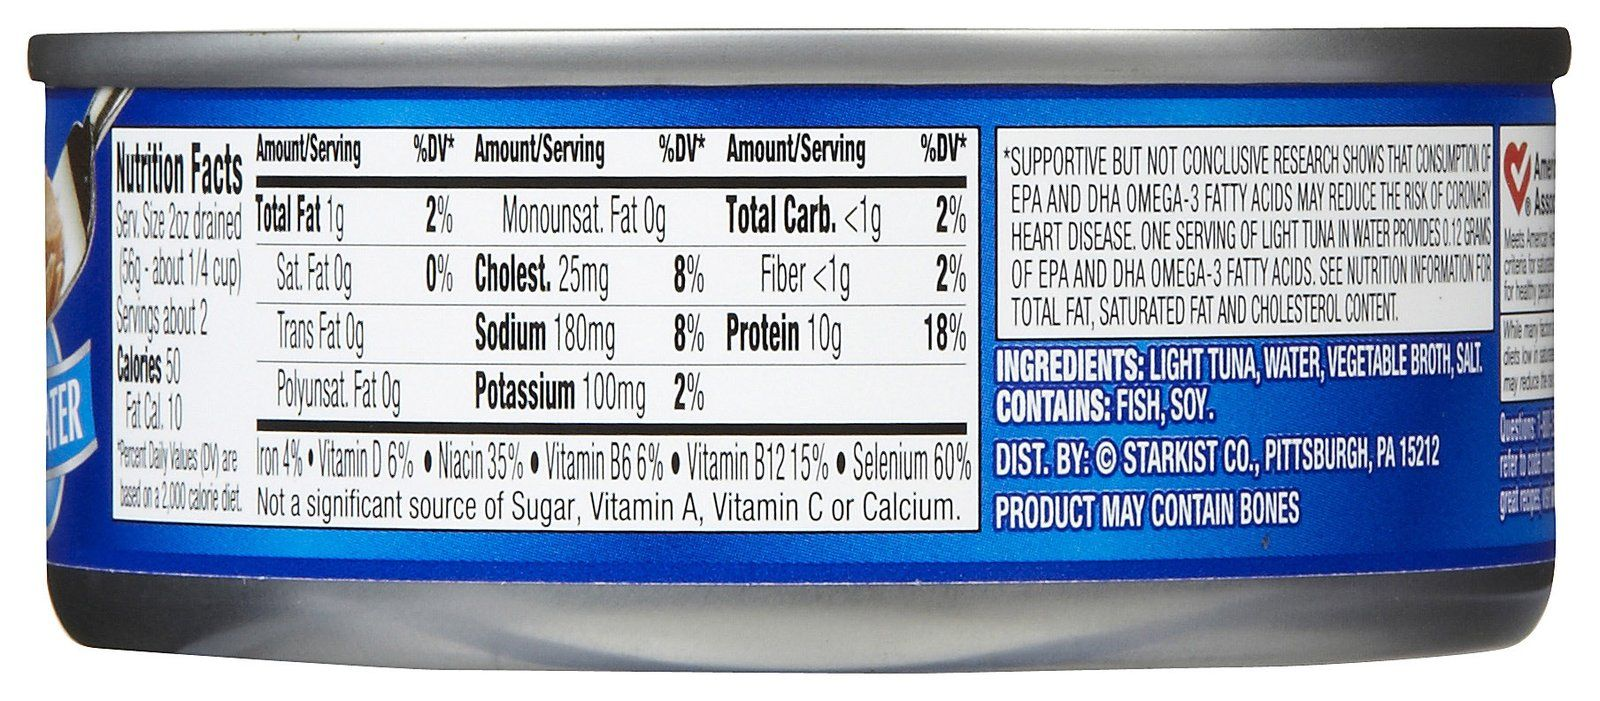 Starkist canned tuna nutrition label nutrition ftempo for Calories in tuna fish